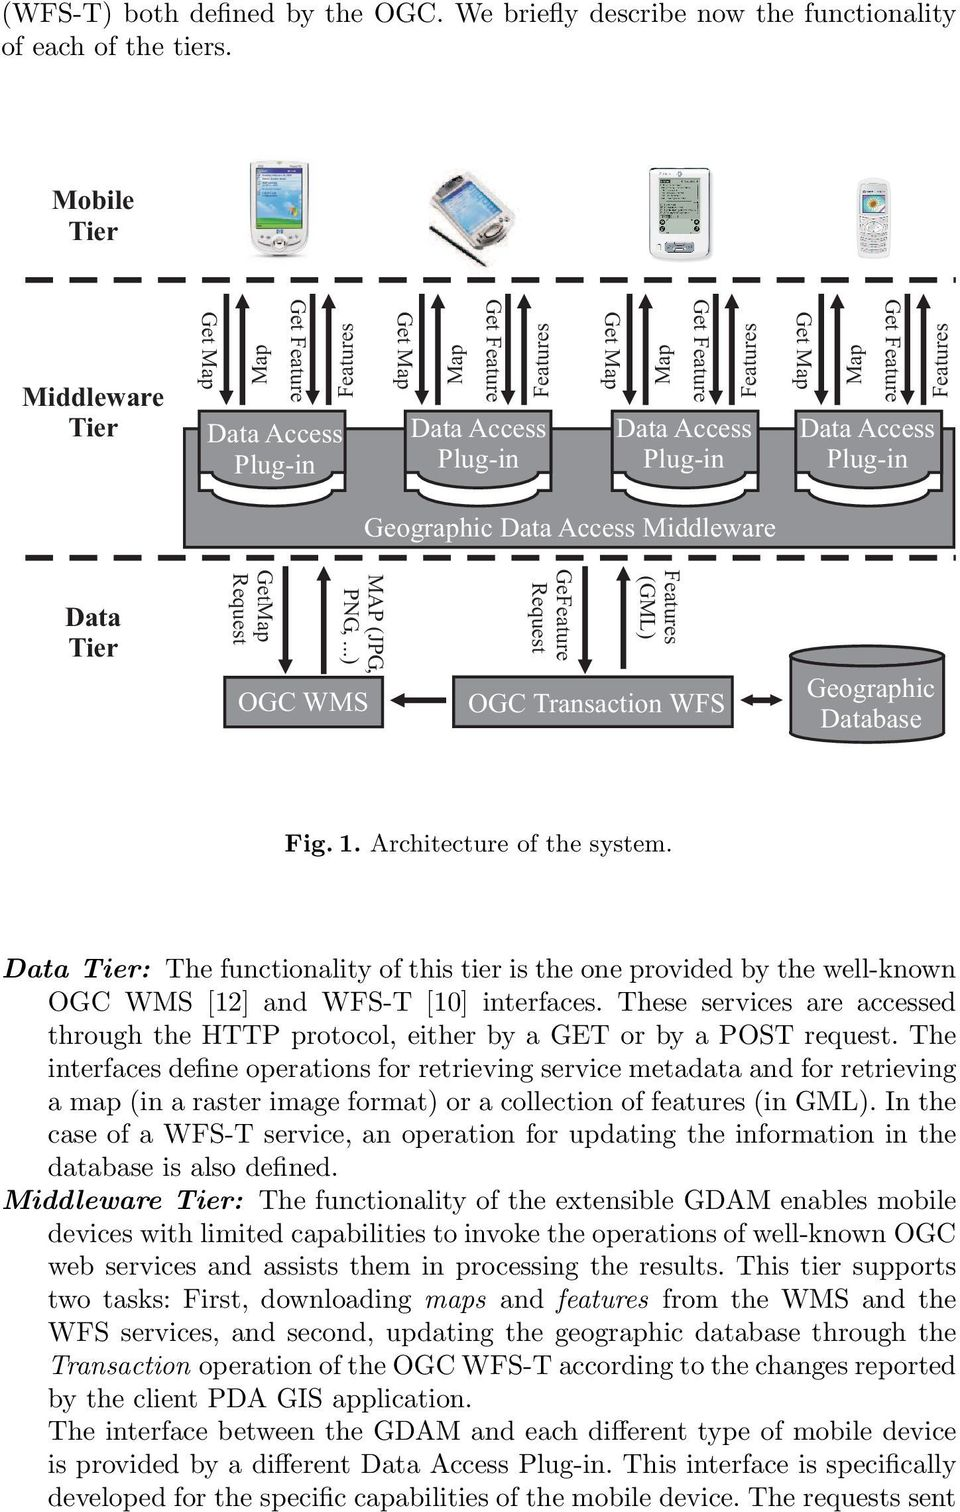 Data Tier: The functionality of this tier is the one provided by the well-known OGC WMS [12] and WFS-T [10] interfaces.